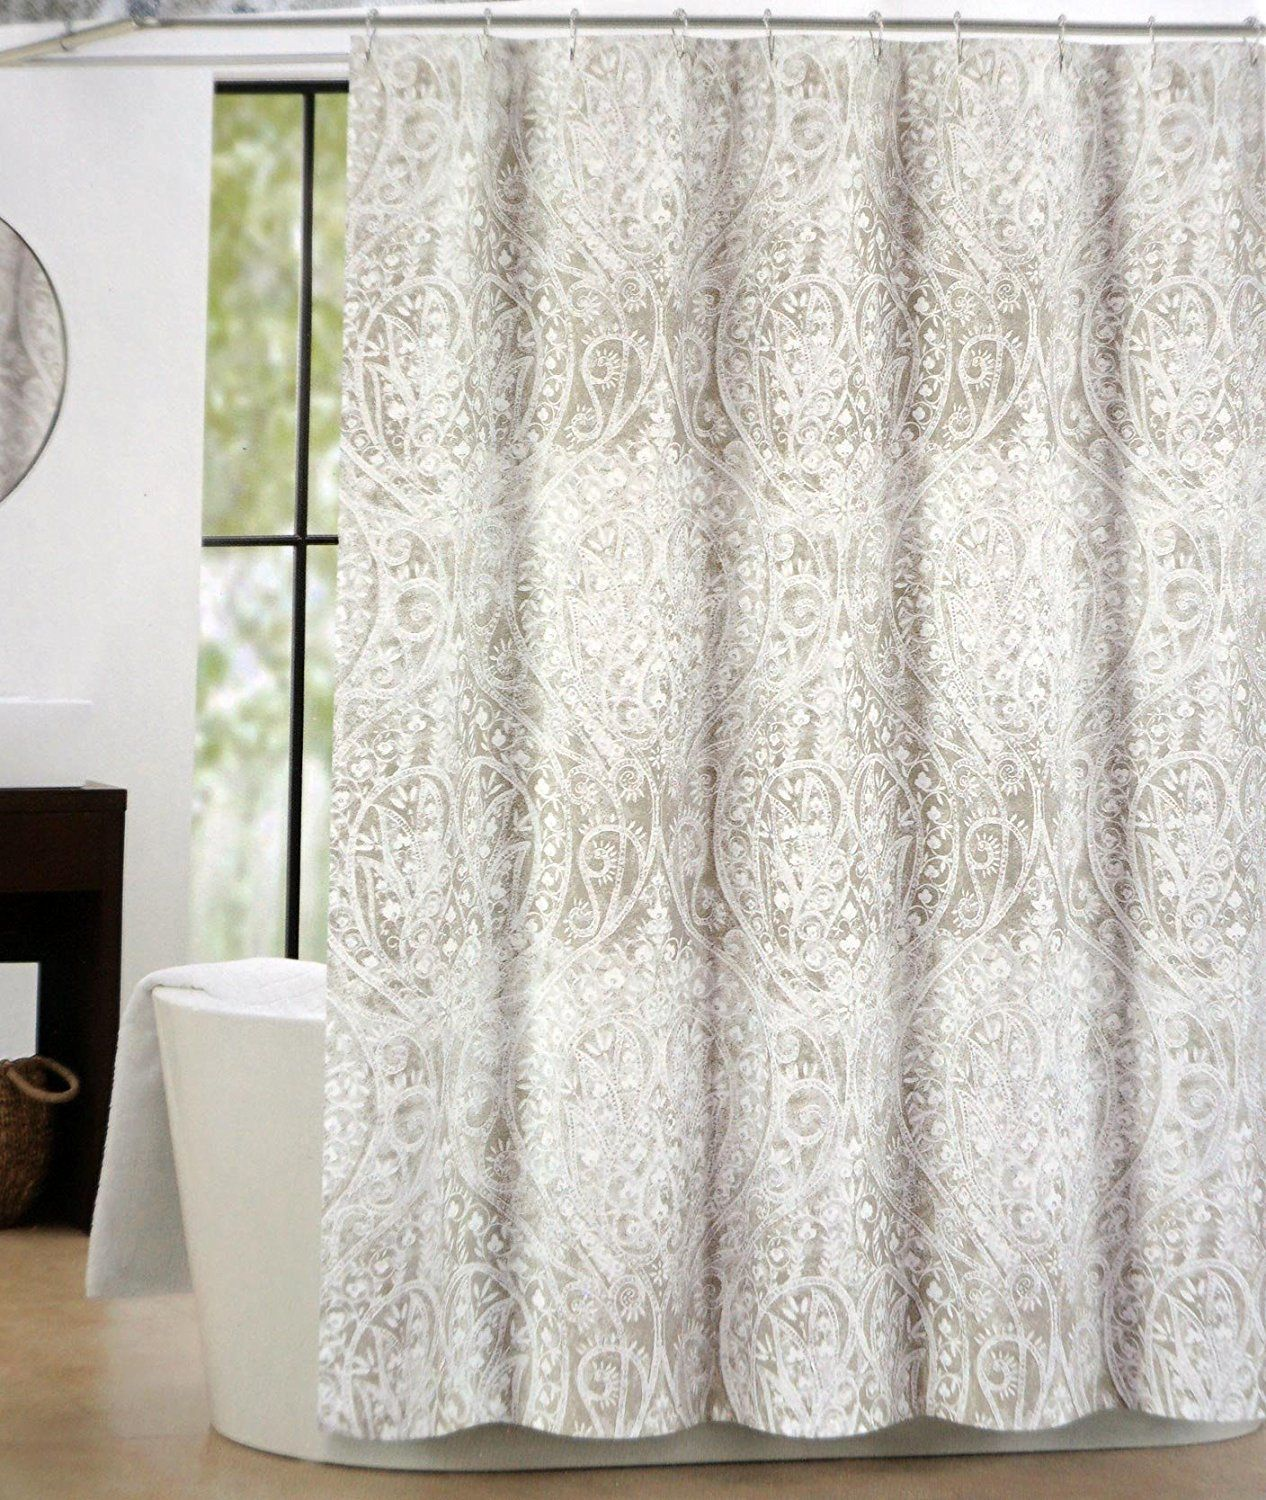 Tahari Fabric Shower Curtain Taupe Beige White Paisley Floral